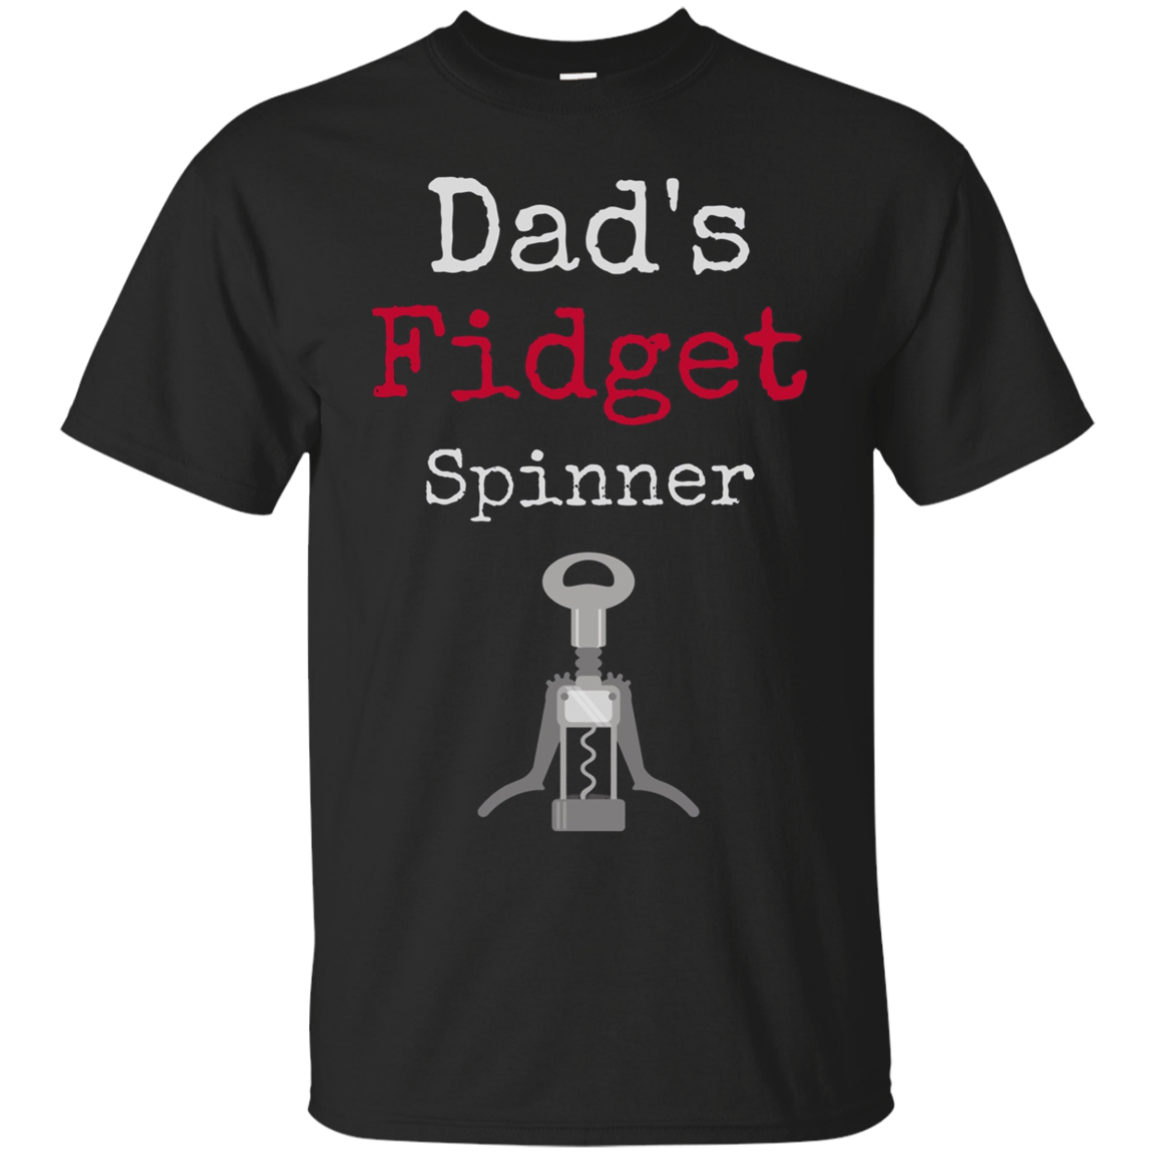 Funny Wine Long Sleeve TShirt Dad's Fidget Spinner Corkscrew